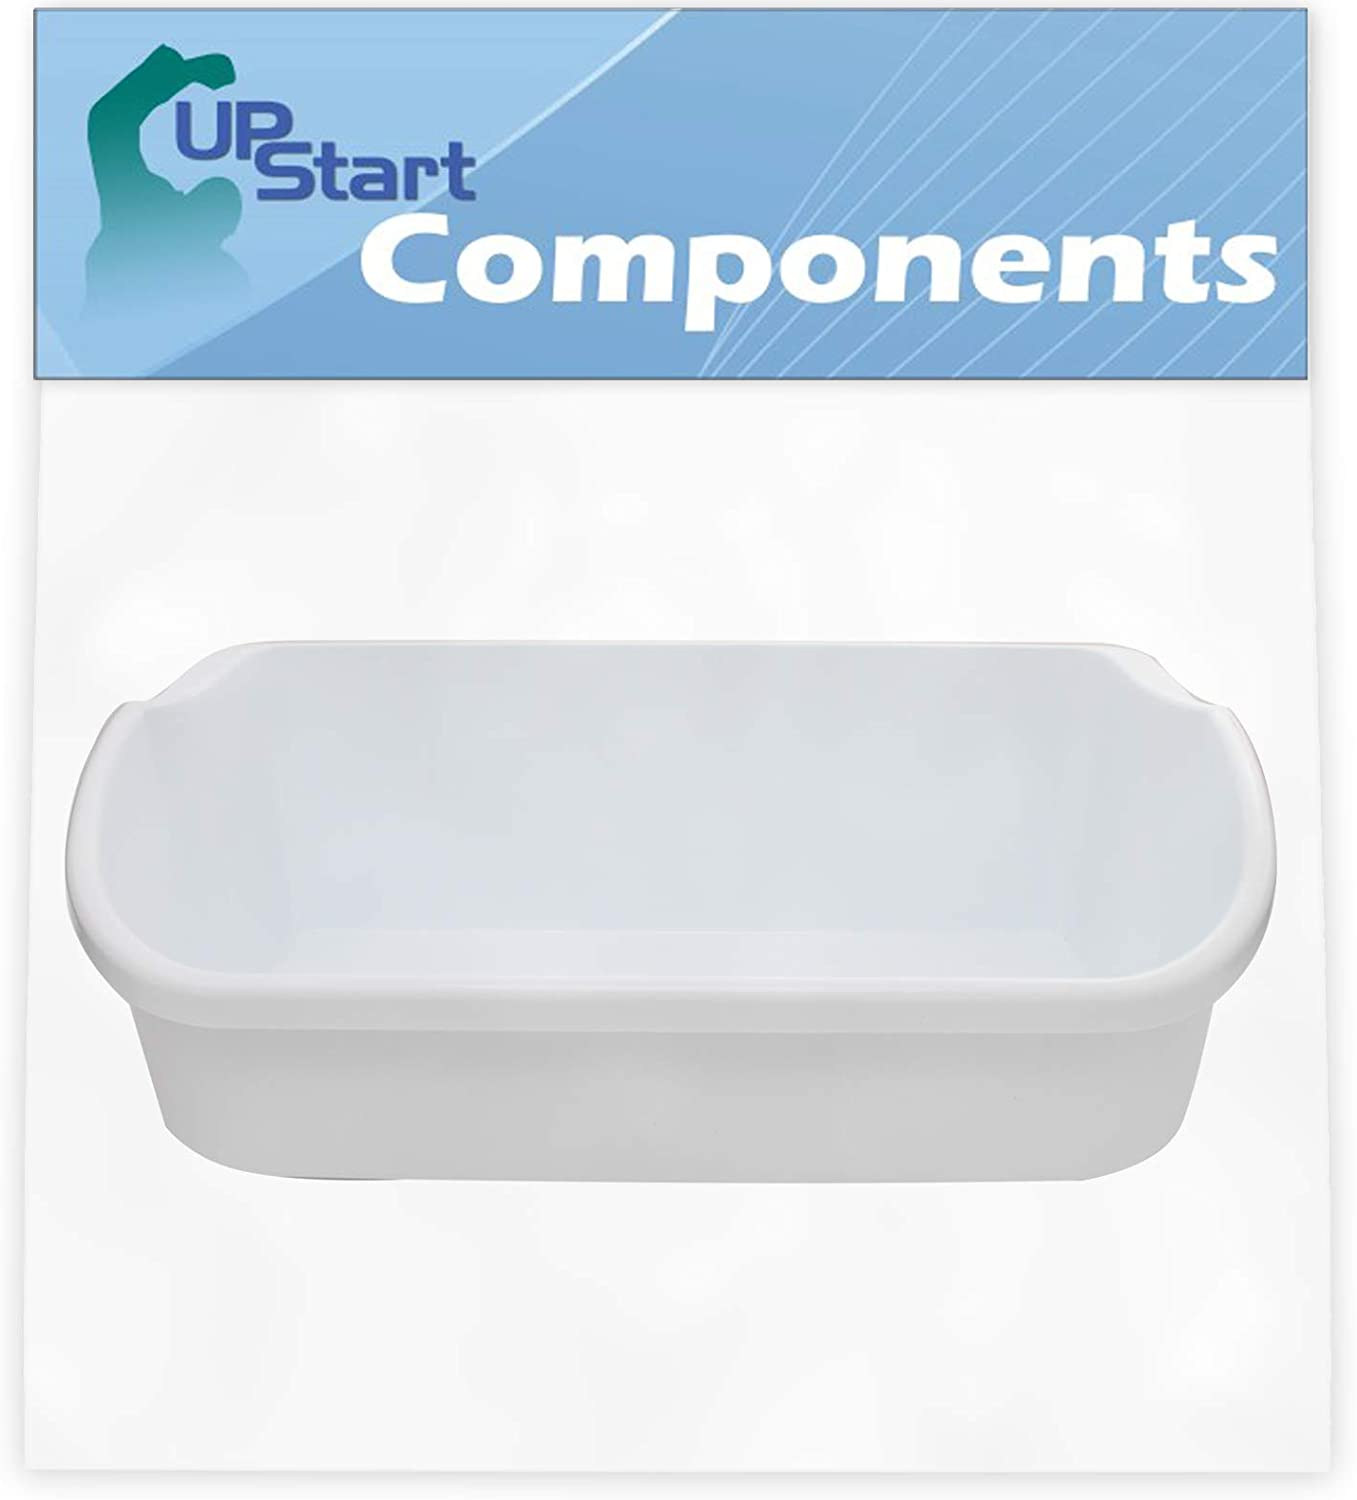 Compatible with 240356401 White Door Bin UpStart Components Brand 240356401 Door Bin Replacement for Frigidaire FRS6KR5JSB4 Refrigerator